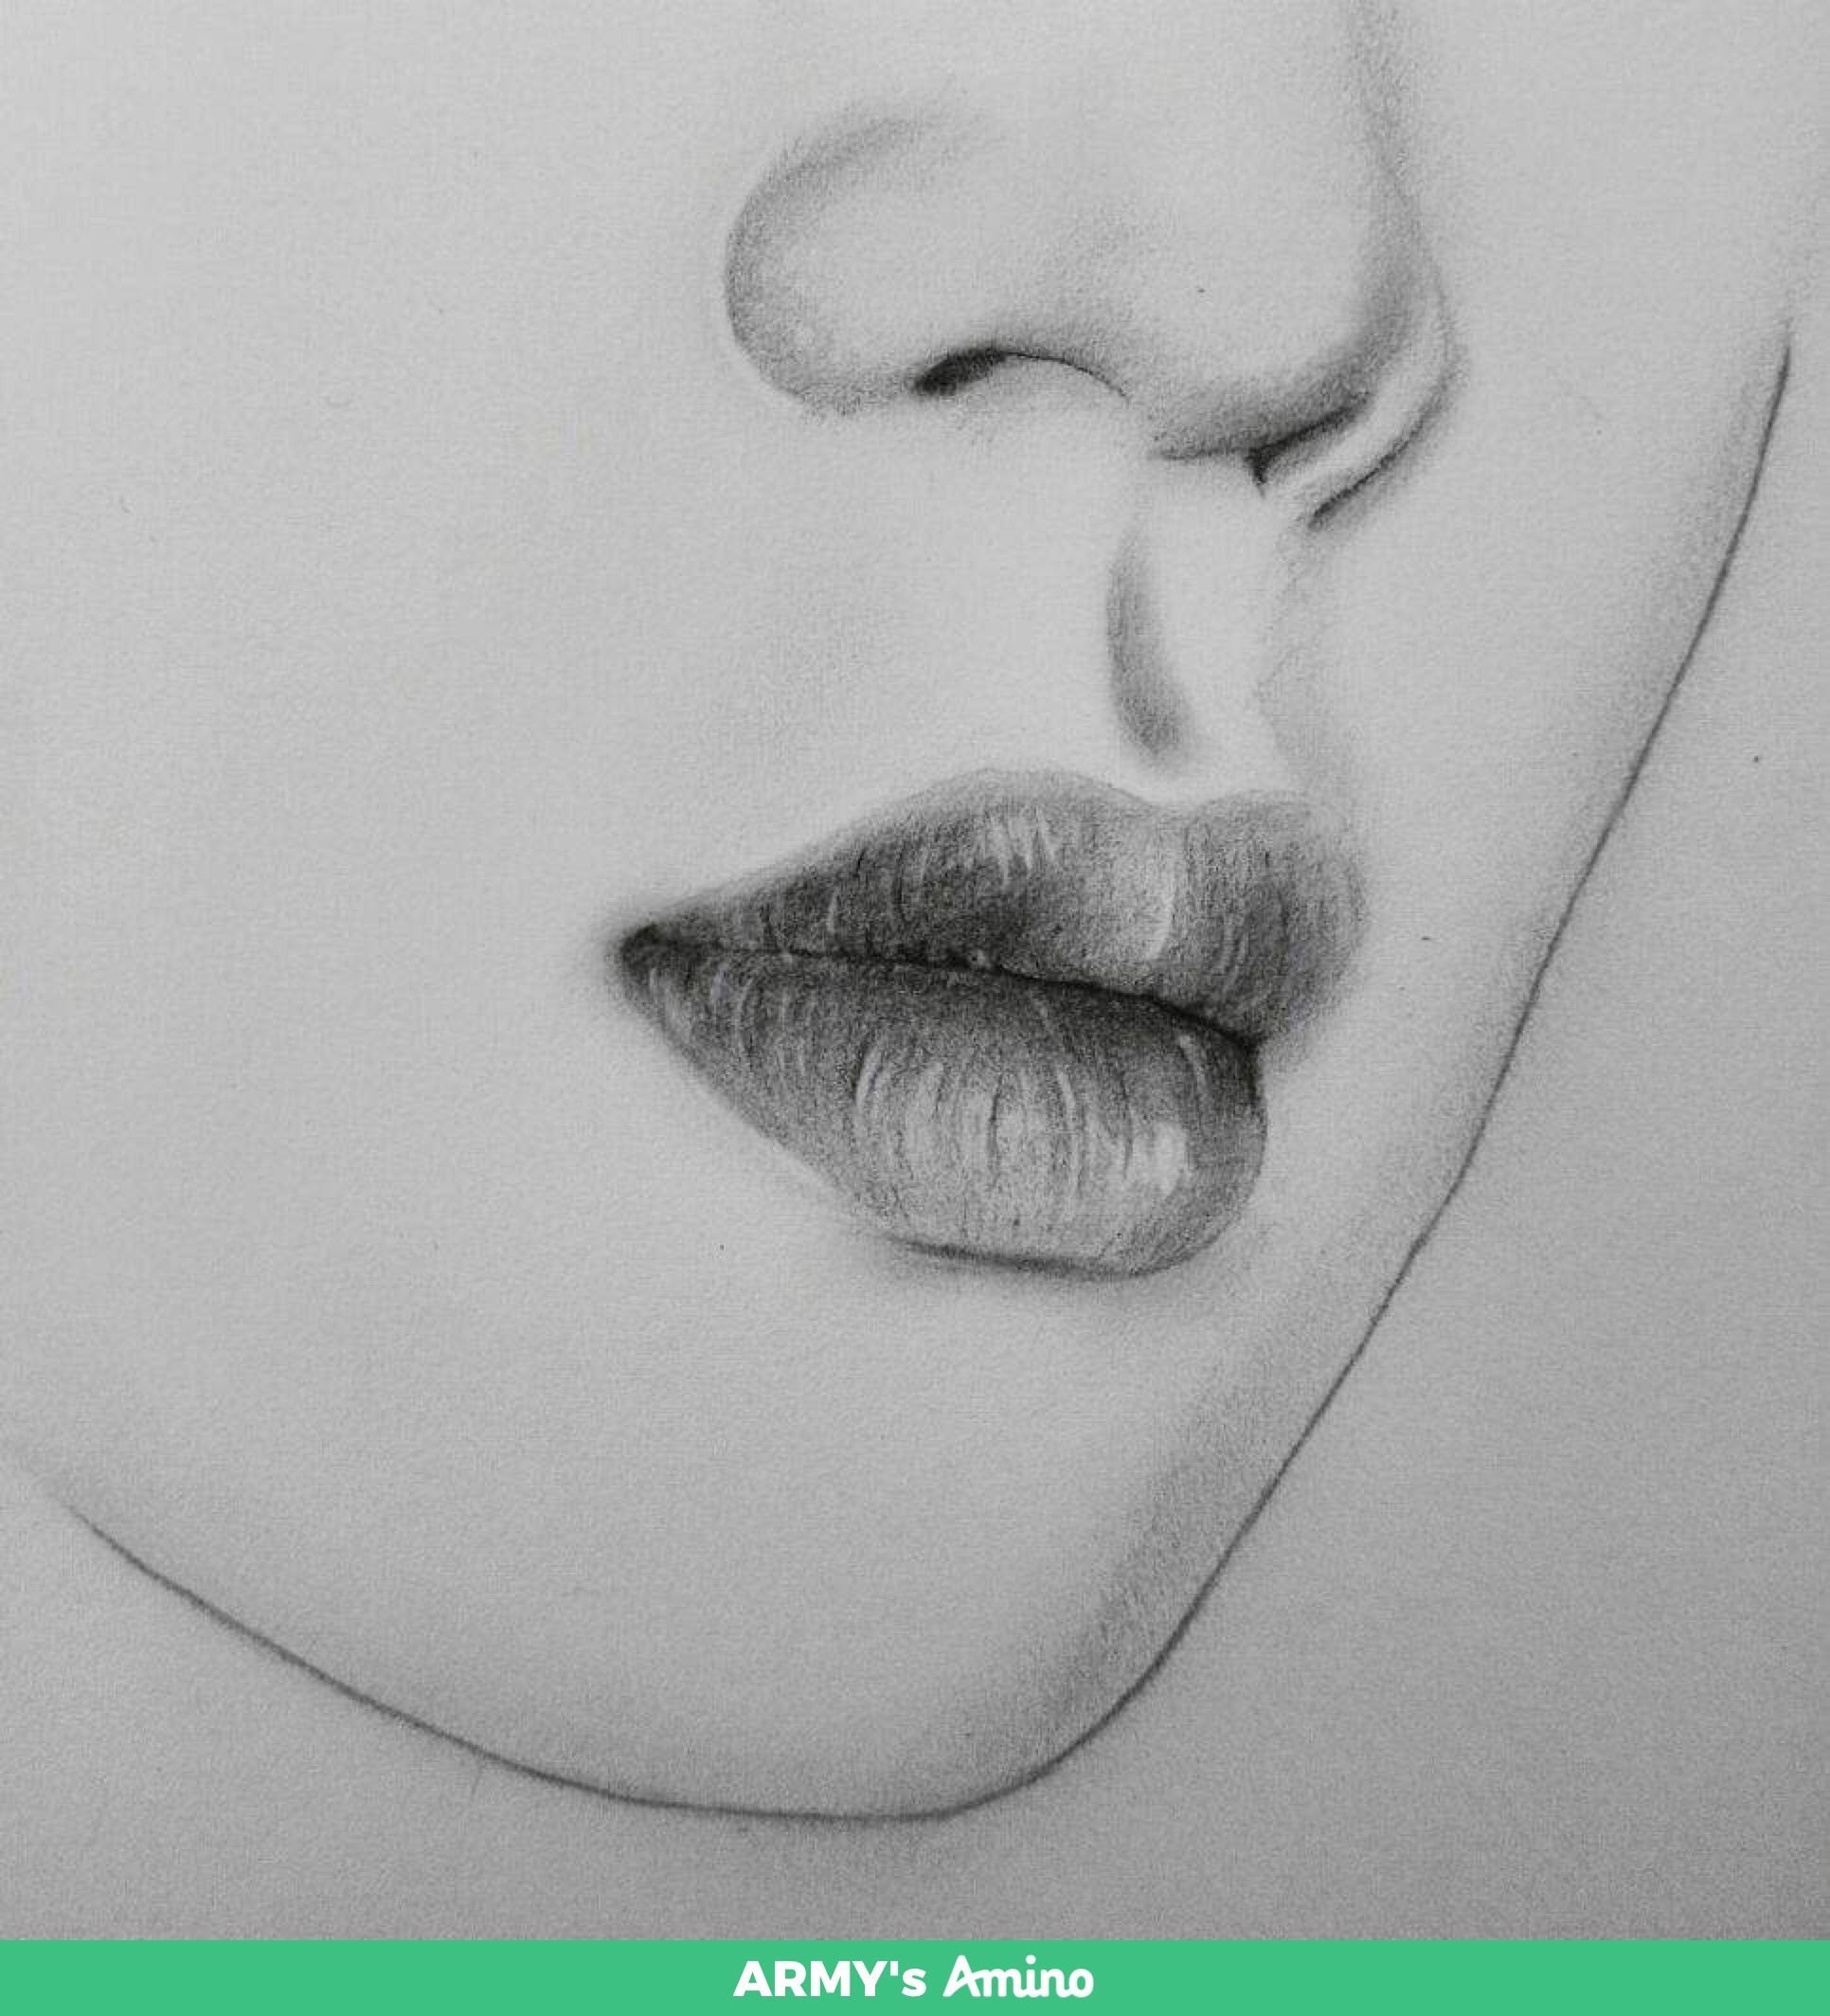 Pin By علي البصراوي On Bts Lips Kpop Drawings Bts Drawings Girl Drawing Sketches Uncultured thoughts on some of the best cultural offerings. pinterest